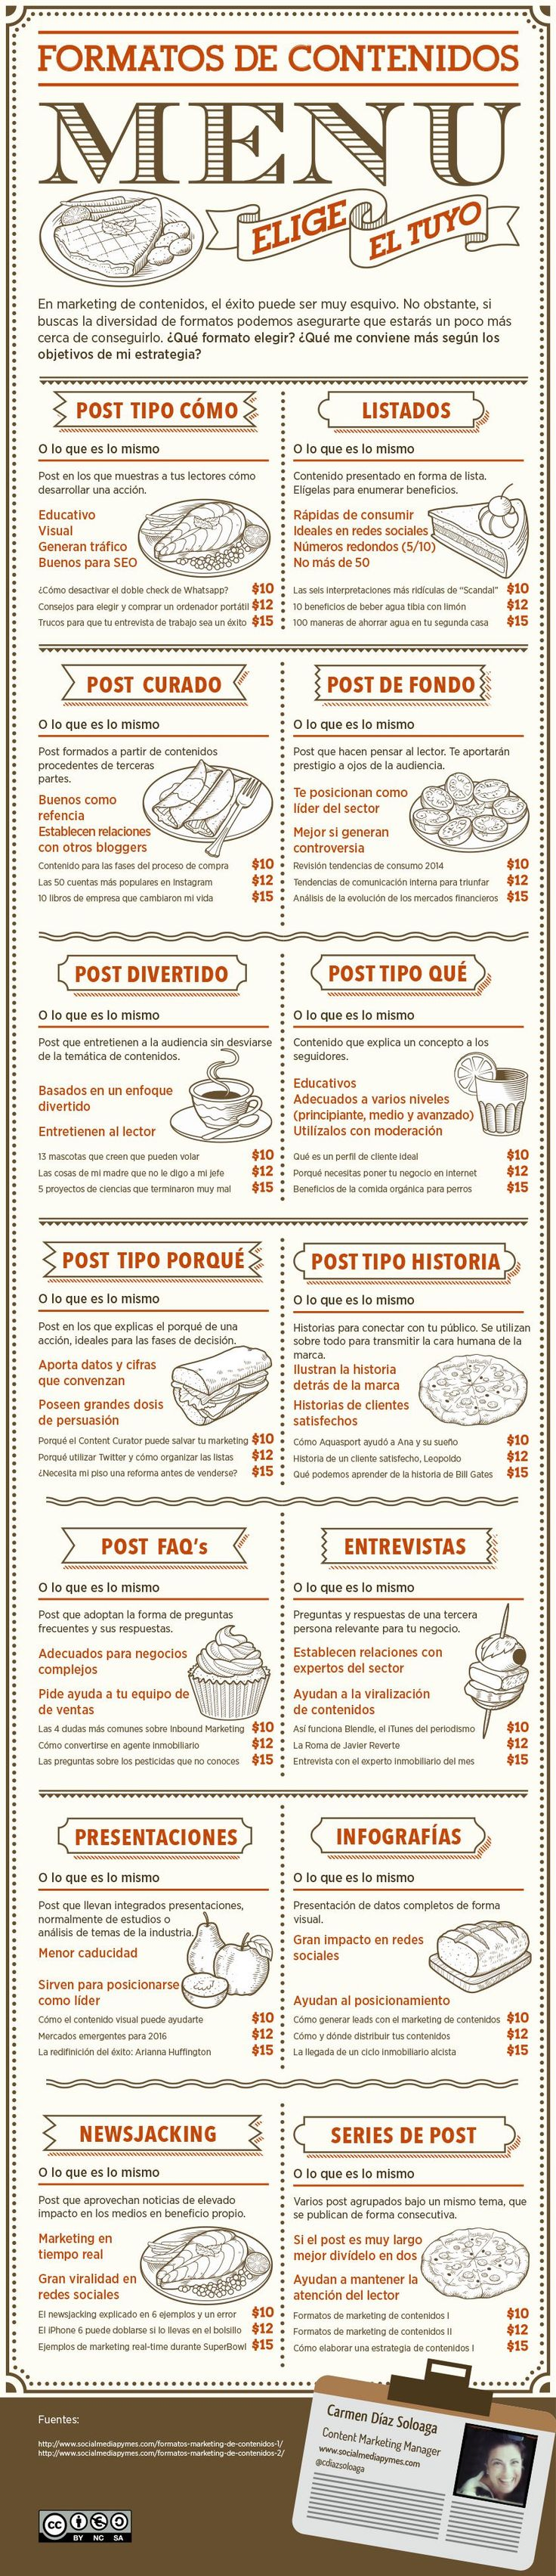 FORMATOS PARA TU MARKETING DE CONTENIDOS #INFOGRAFIA #INFOGRAPHIC #MARKETING